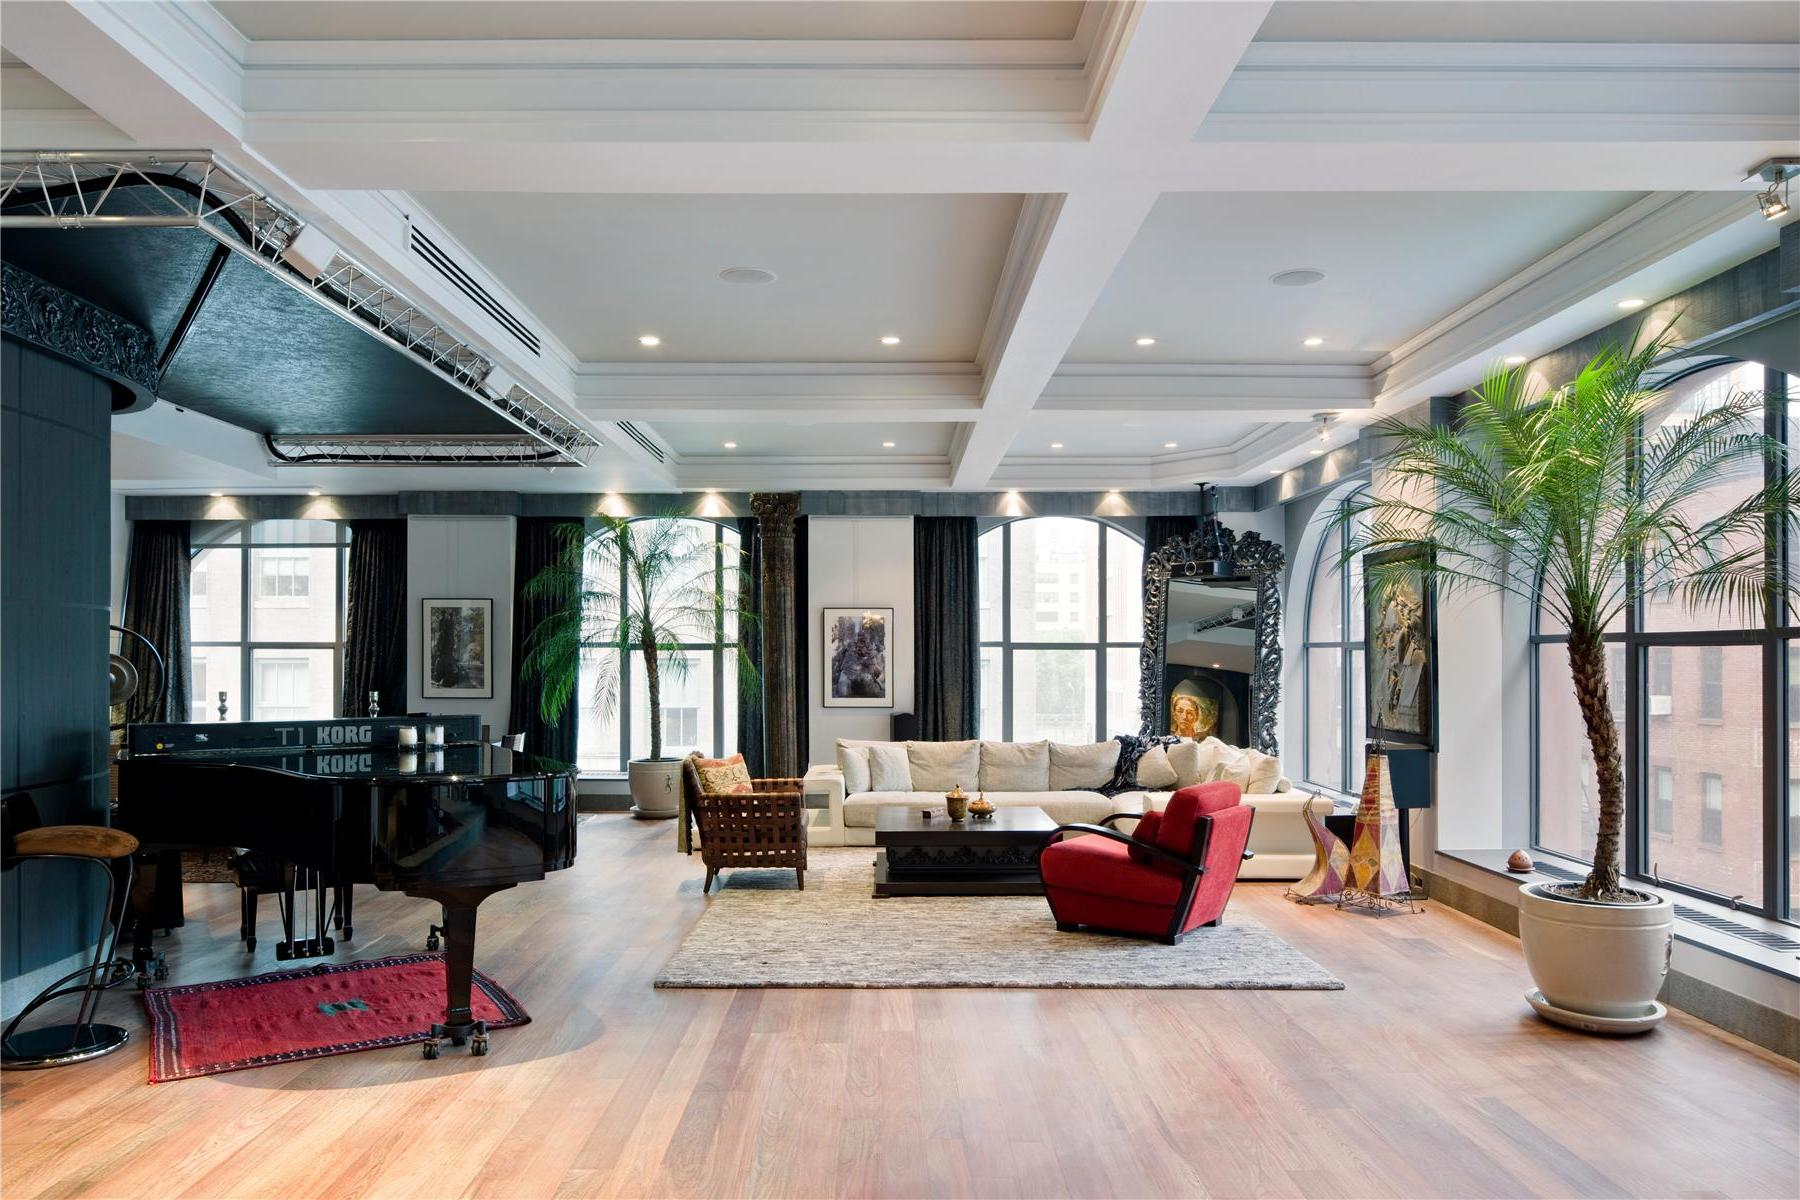 13 Stunning Apartments In New York: Contemporary 408 Greenwich Street Loft In New York